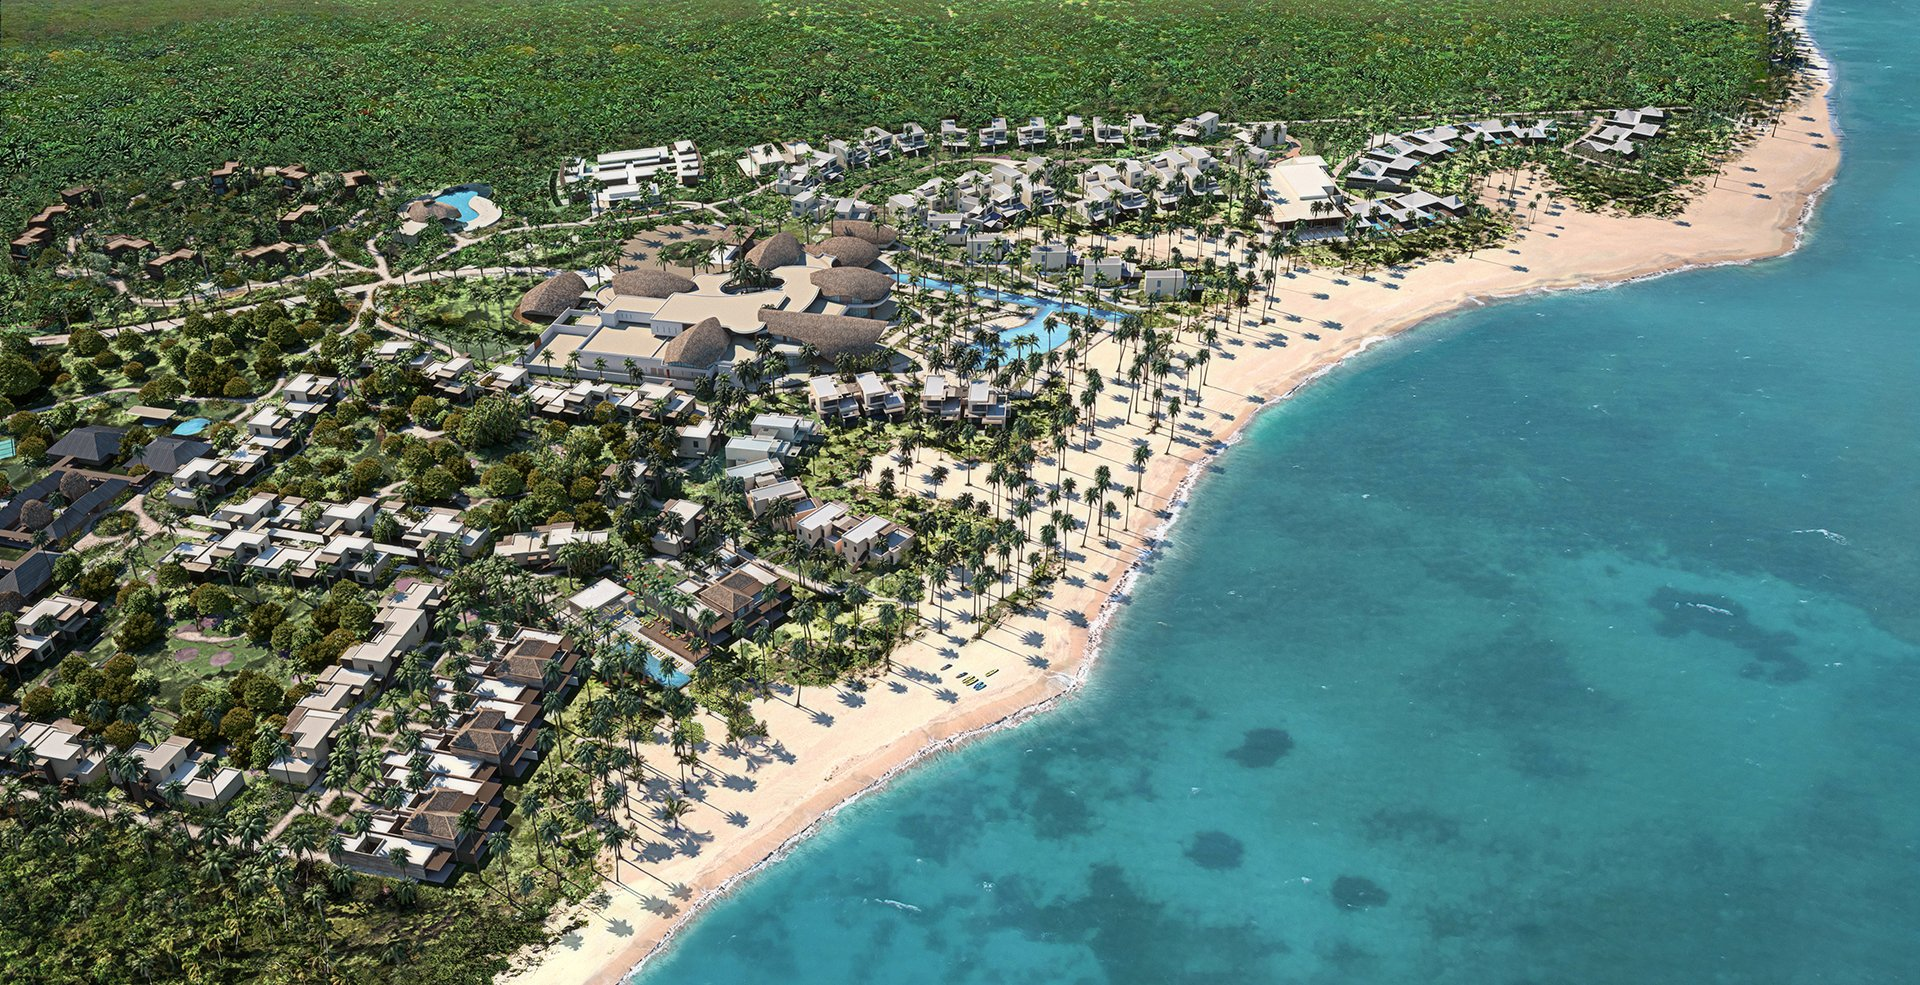 Before construction, Club Med worked with local government agencies on an in-depth environmental impact study of the resort's plans to ensure a minimal footprint and impact to Miches.